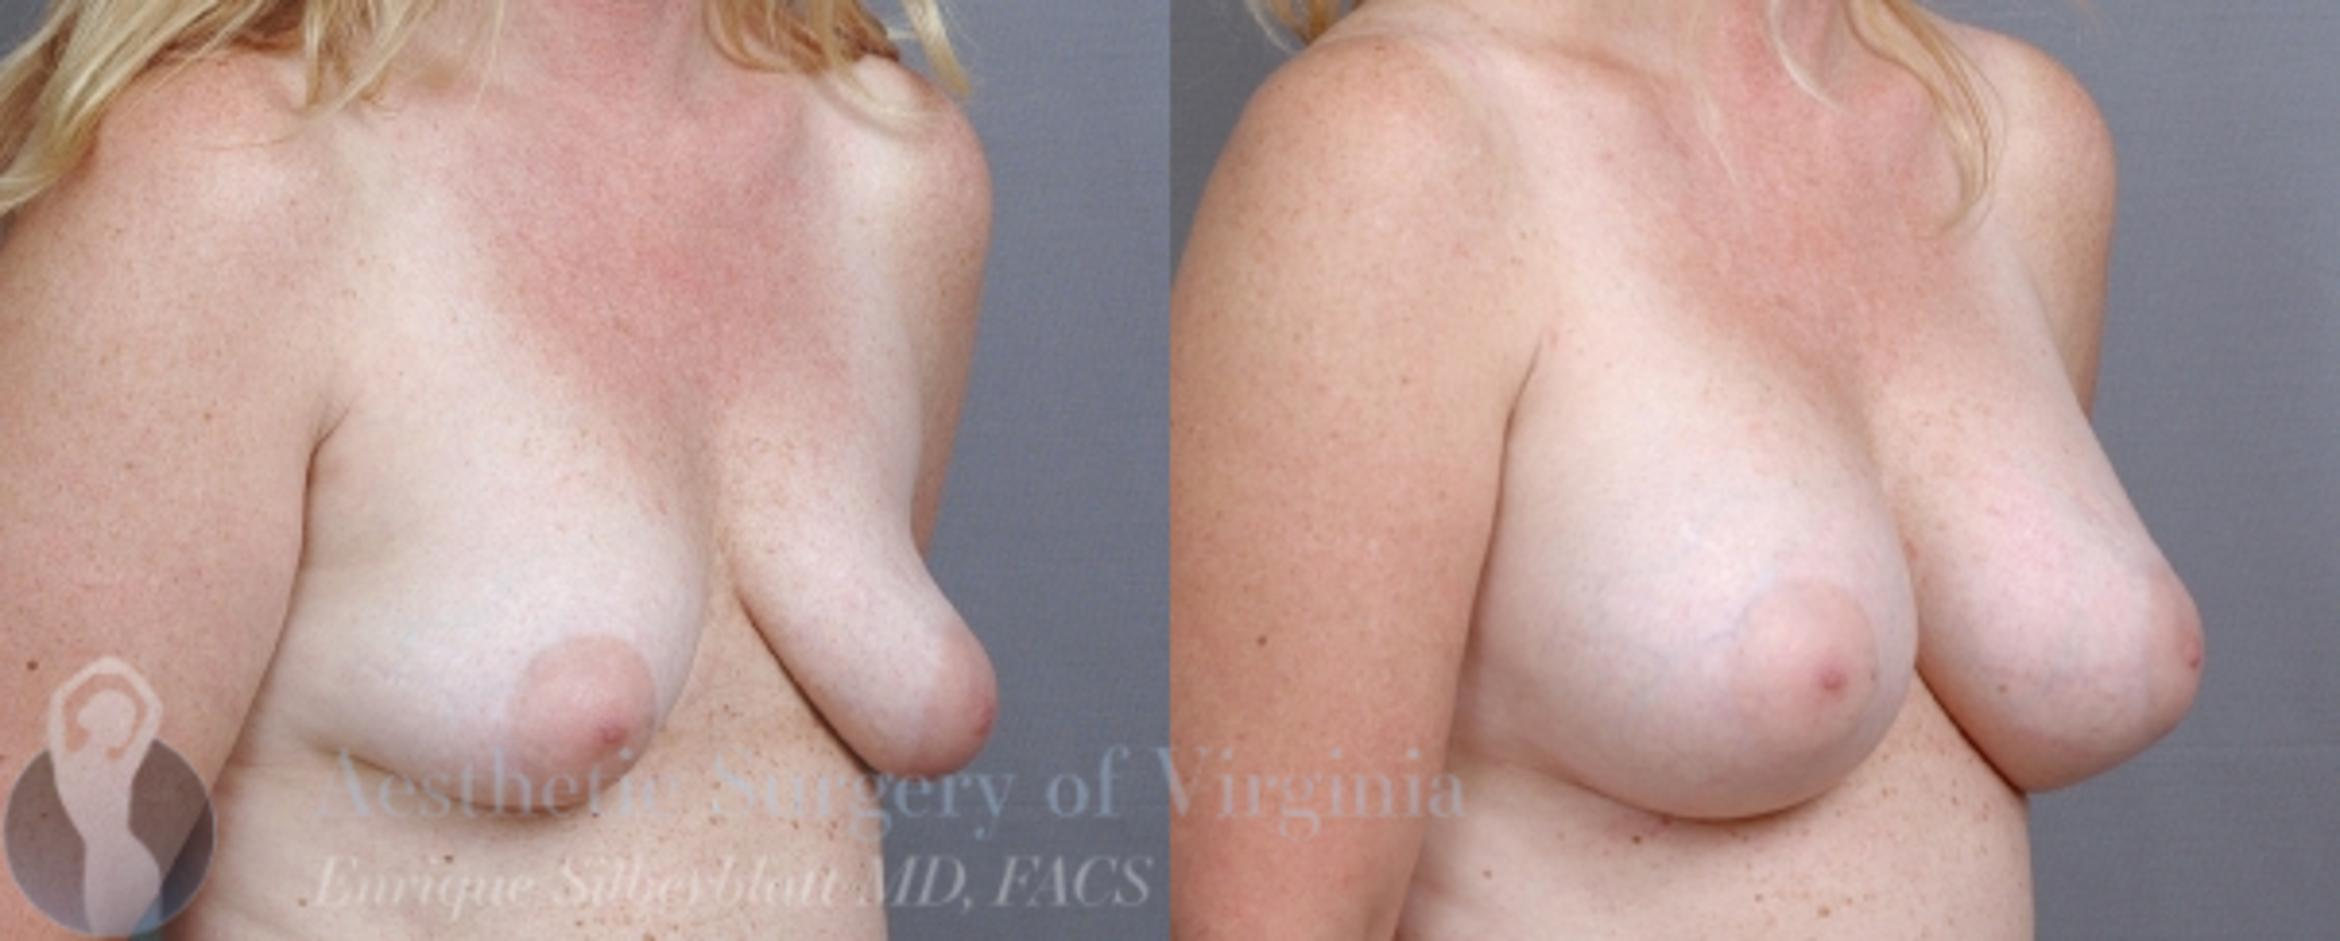 Breast Augmentation Case 9 Before & After View #4 | Roanoke, VA | Aesthetic Surgery of Virginia: Enrique Silberblatt, MD